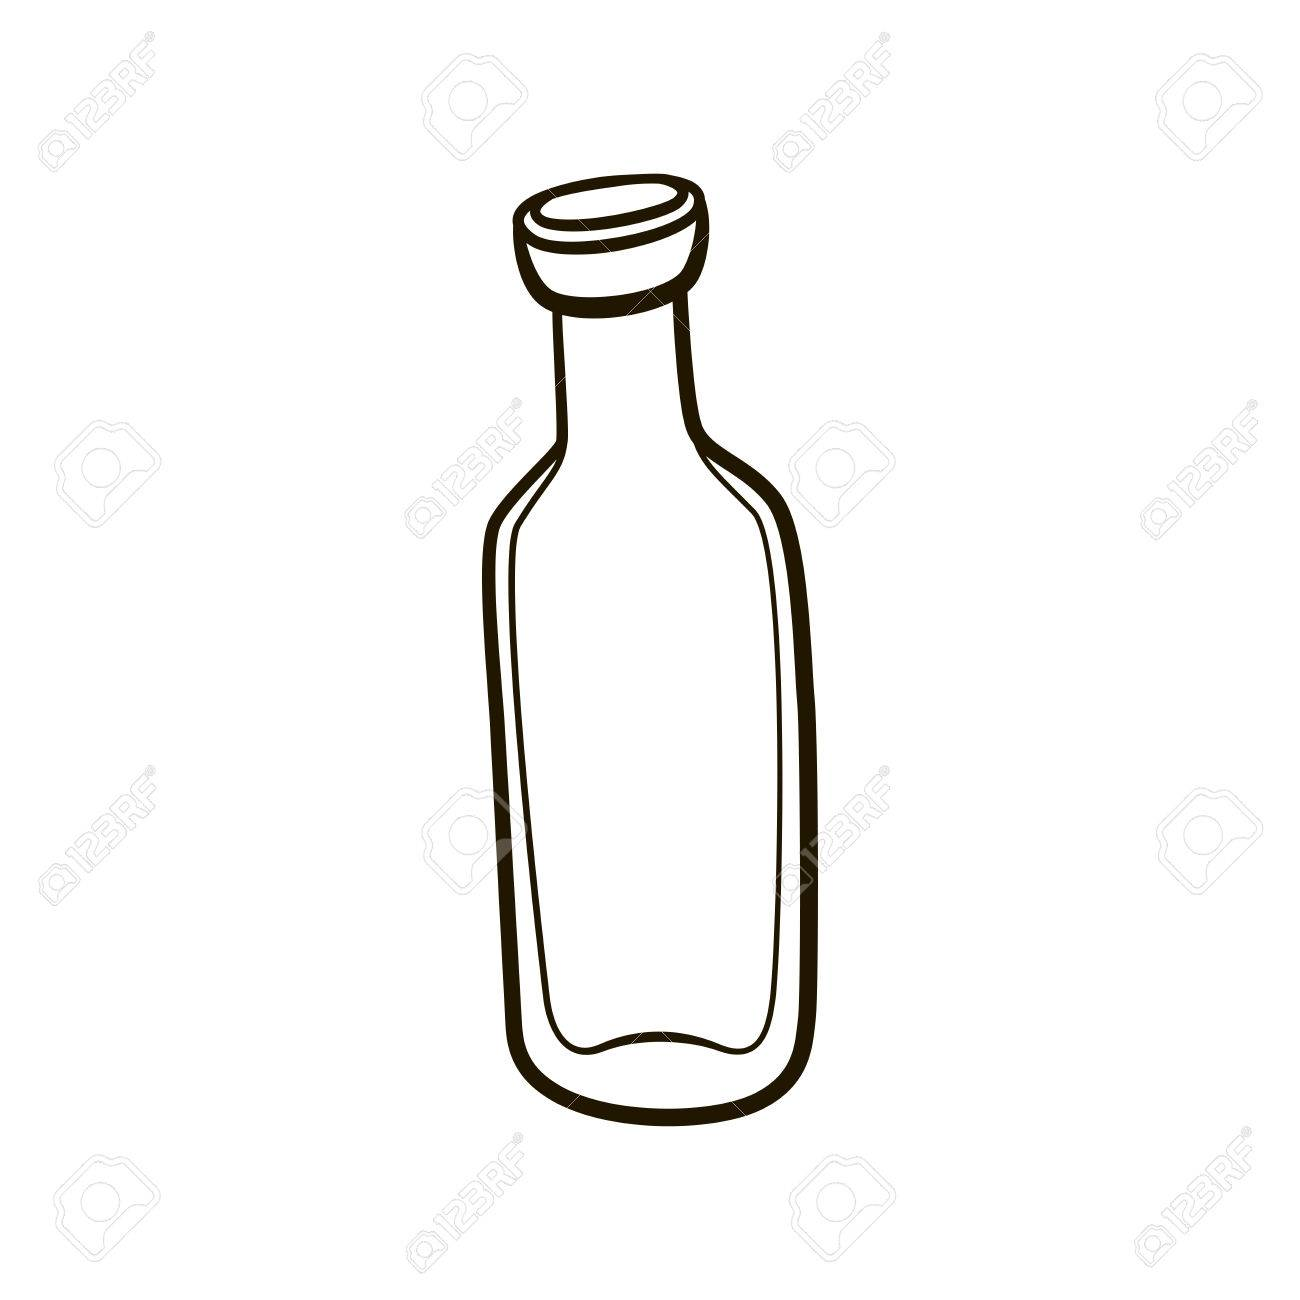 empty old fashioned milk bottle icon hand drawing contour